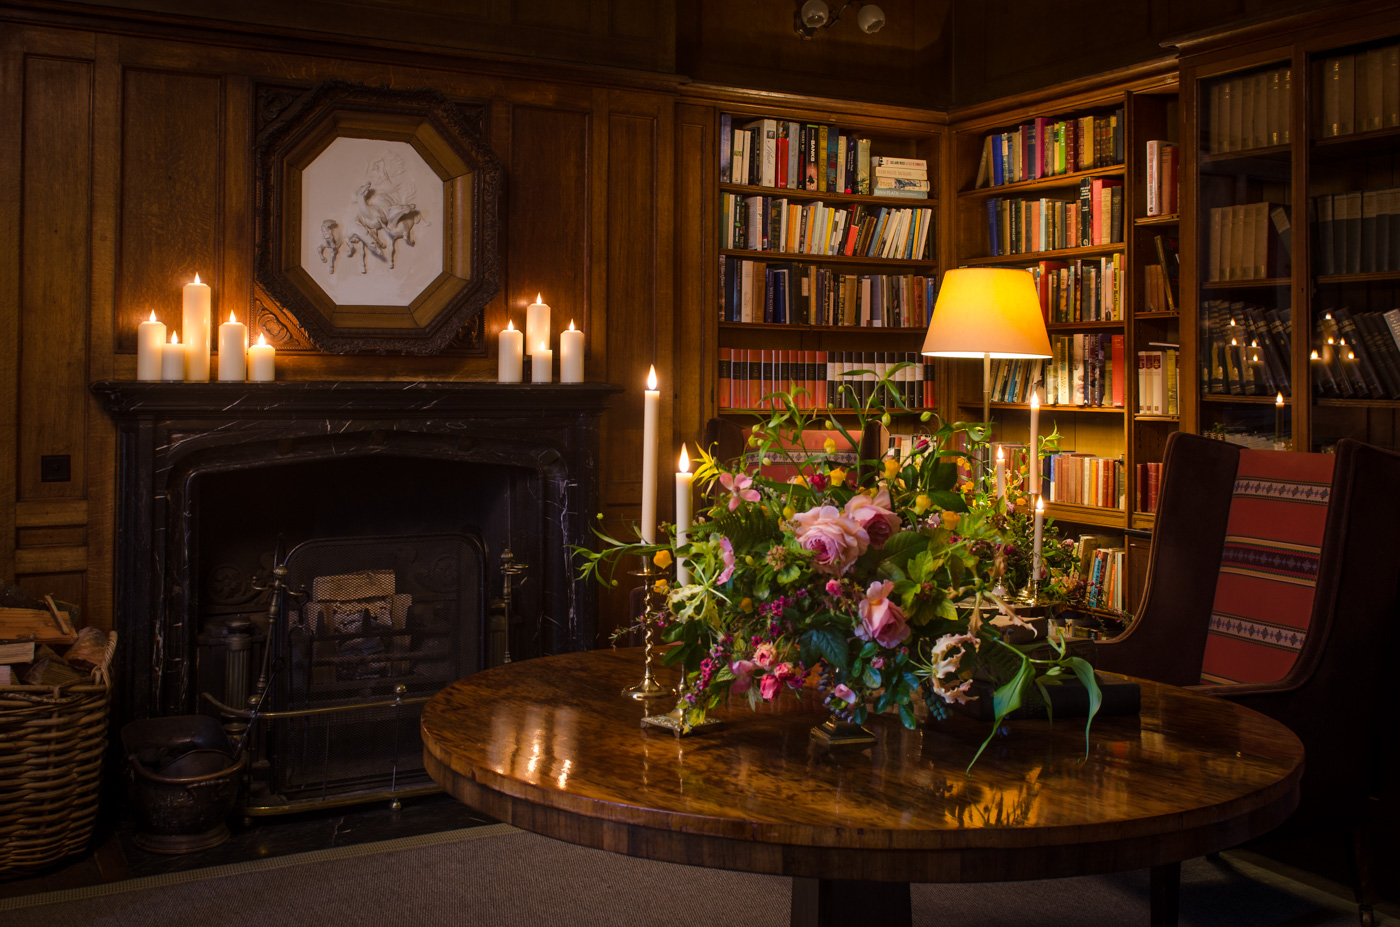 Candled Endsleigh Library